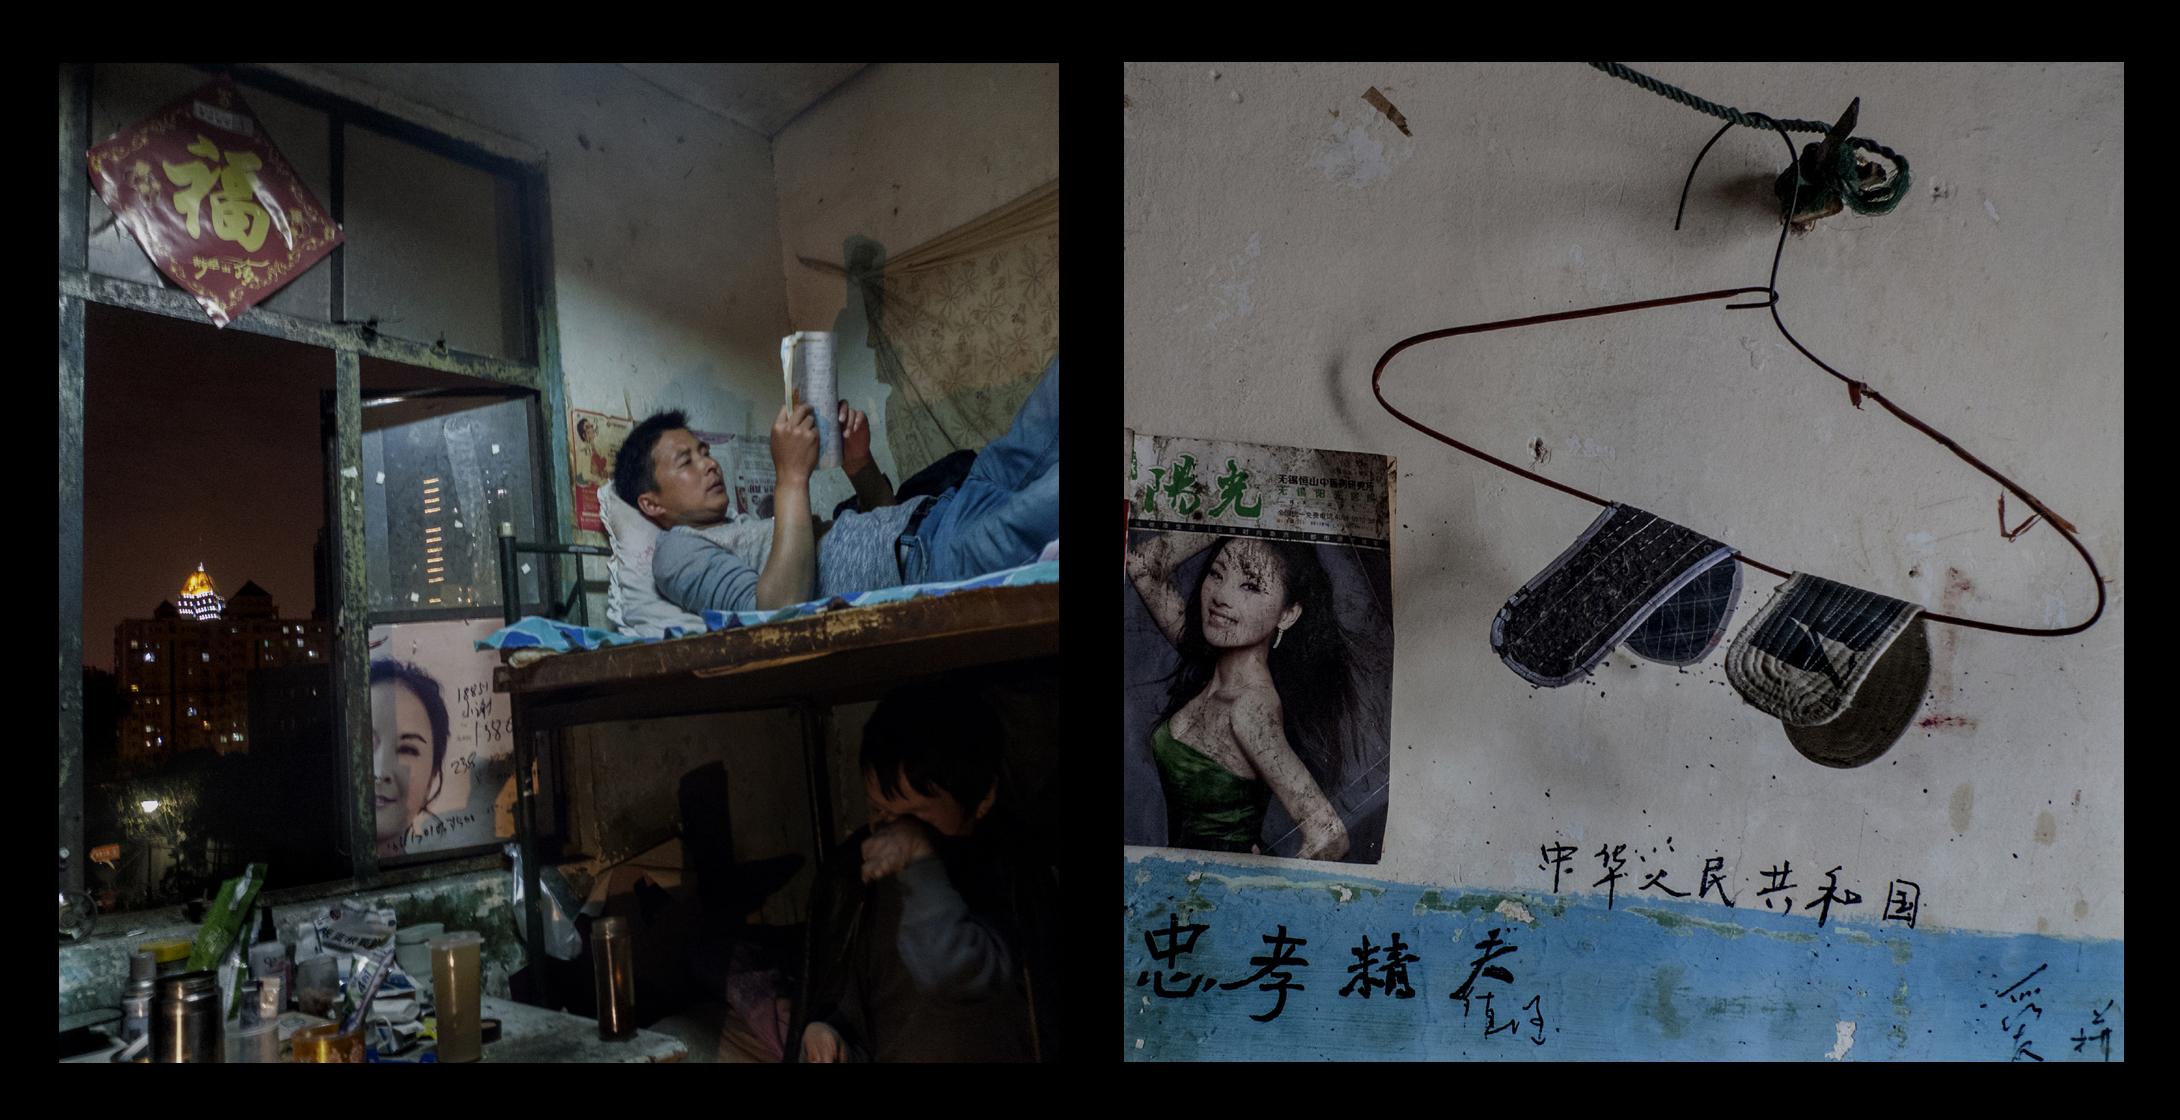 Li Jie, 28, from Anhui province, made his living selling rat poison. He lived at the Paddy's Edge for four years and was taking driver's education classes in preparation for applying for a license. Once, Li said, security guards at a nearby market apprehended him and threatened to take him to the police station. When Ms. Gu went to bail him out, the guards set him free, but she had to pay 1,200 RMB in bail.